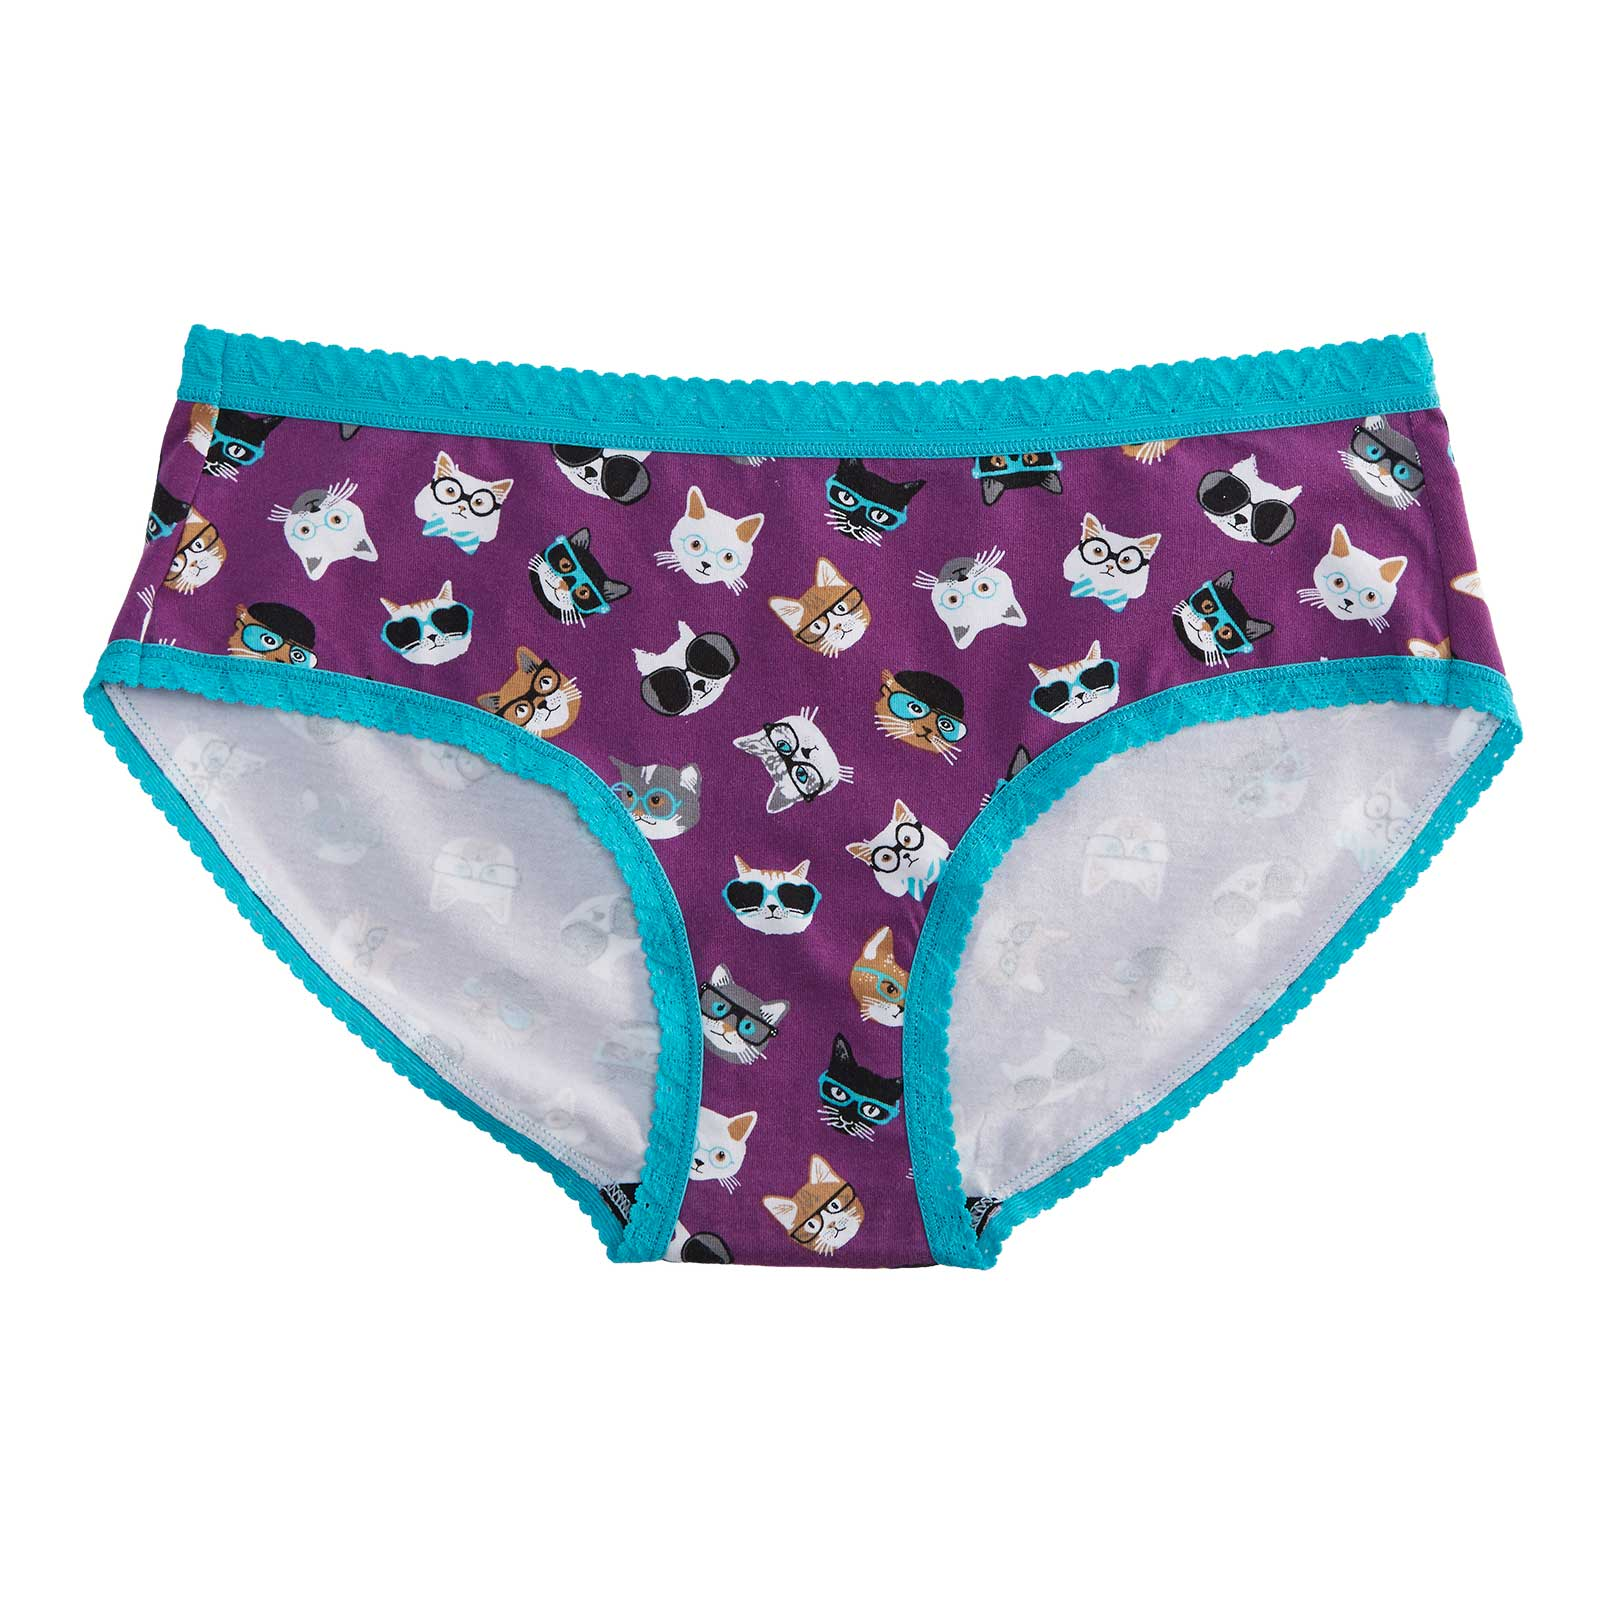 Women's Hipster Smarty Cats Underwear